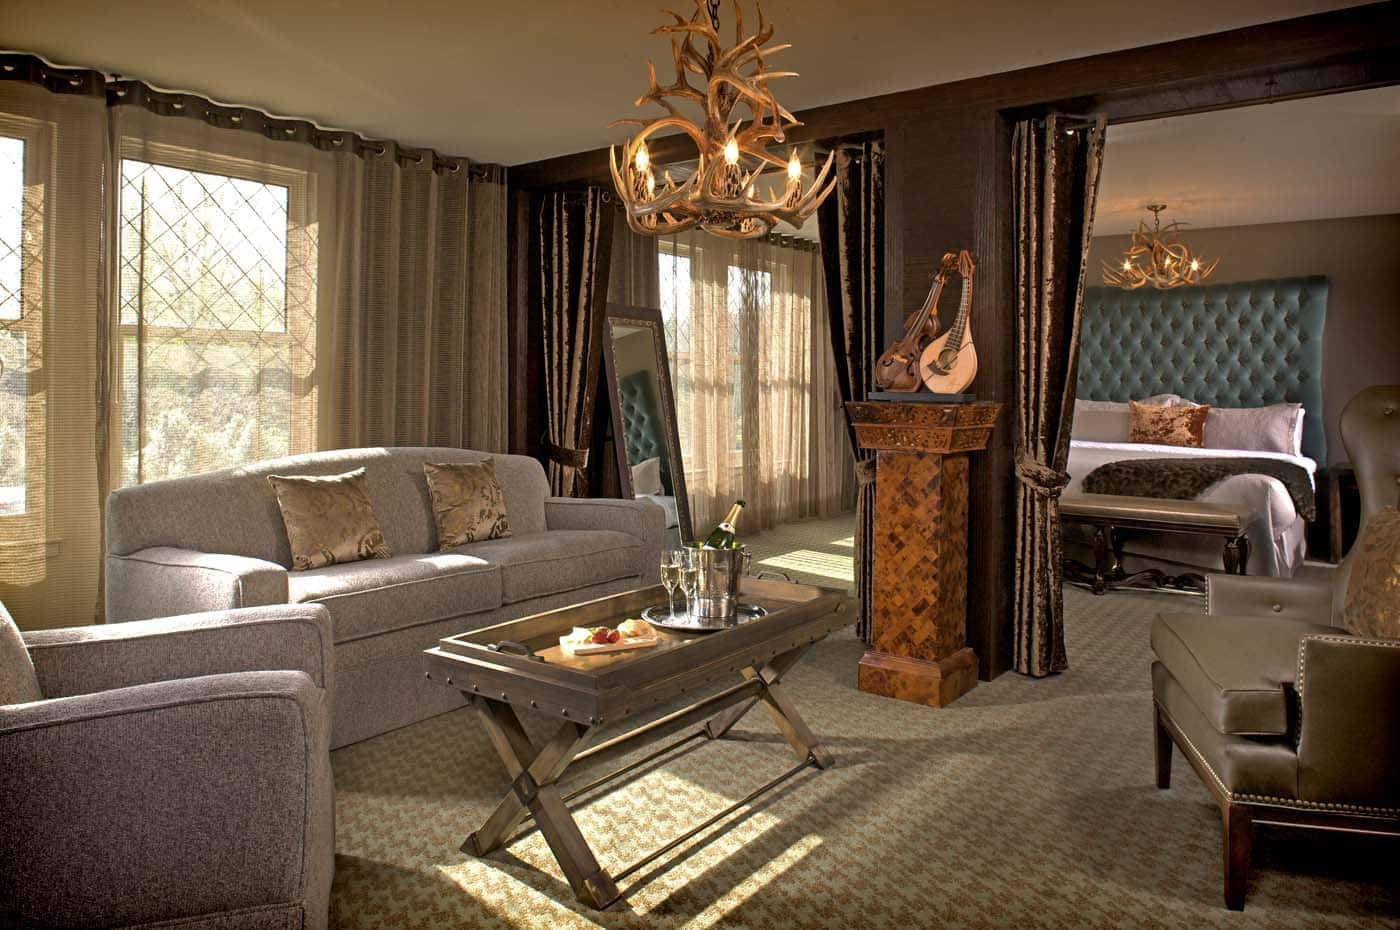 spicing up the bedroom bless er house spicing things up bedroom decorating ideas adorable home